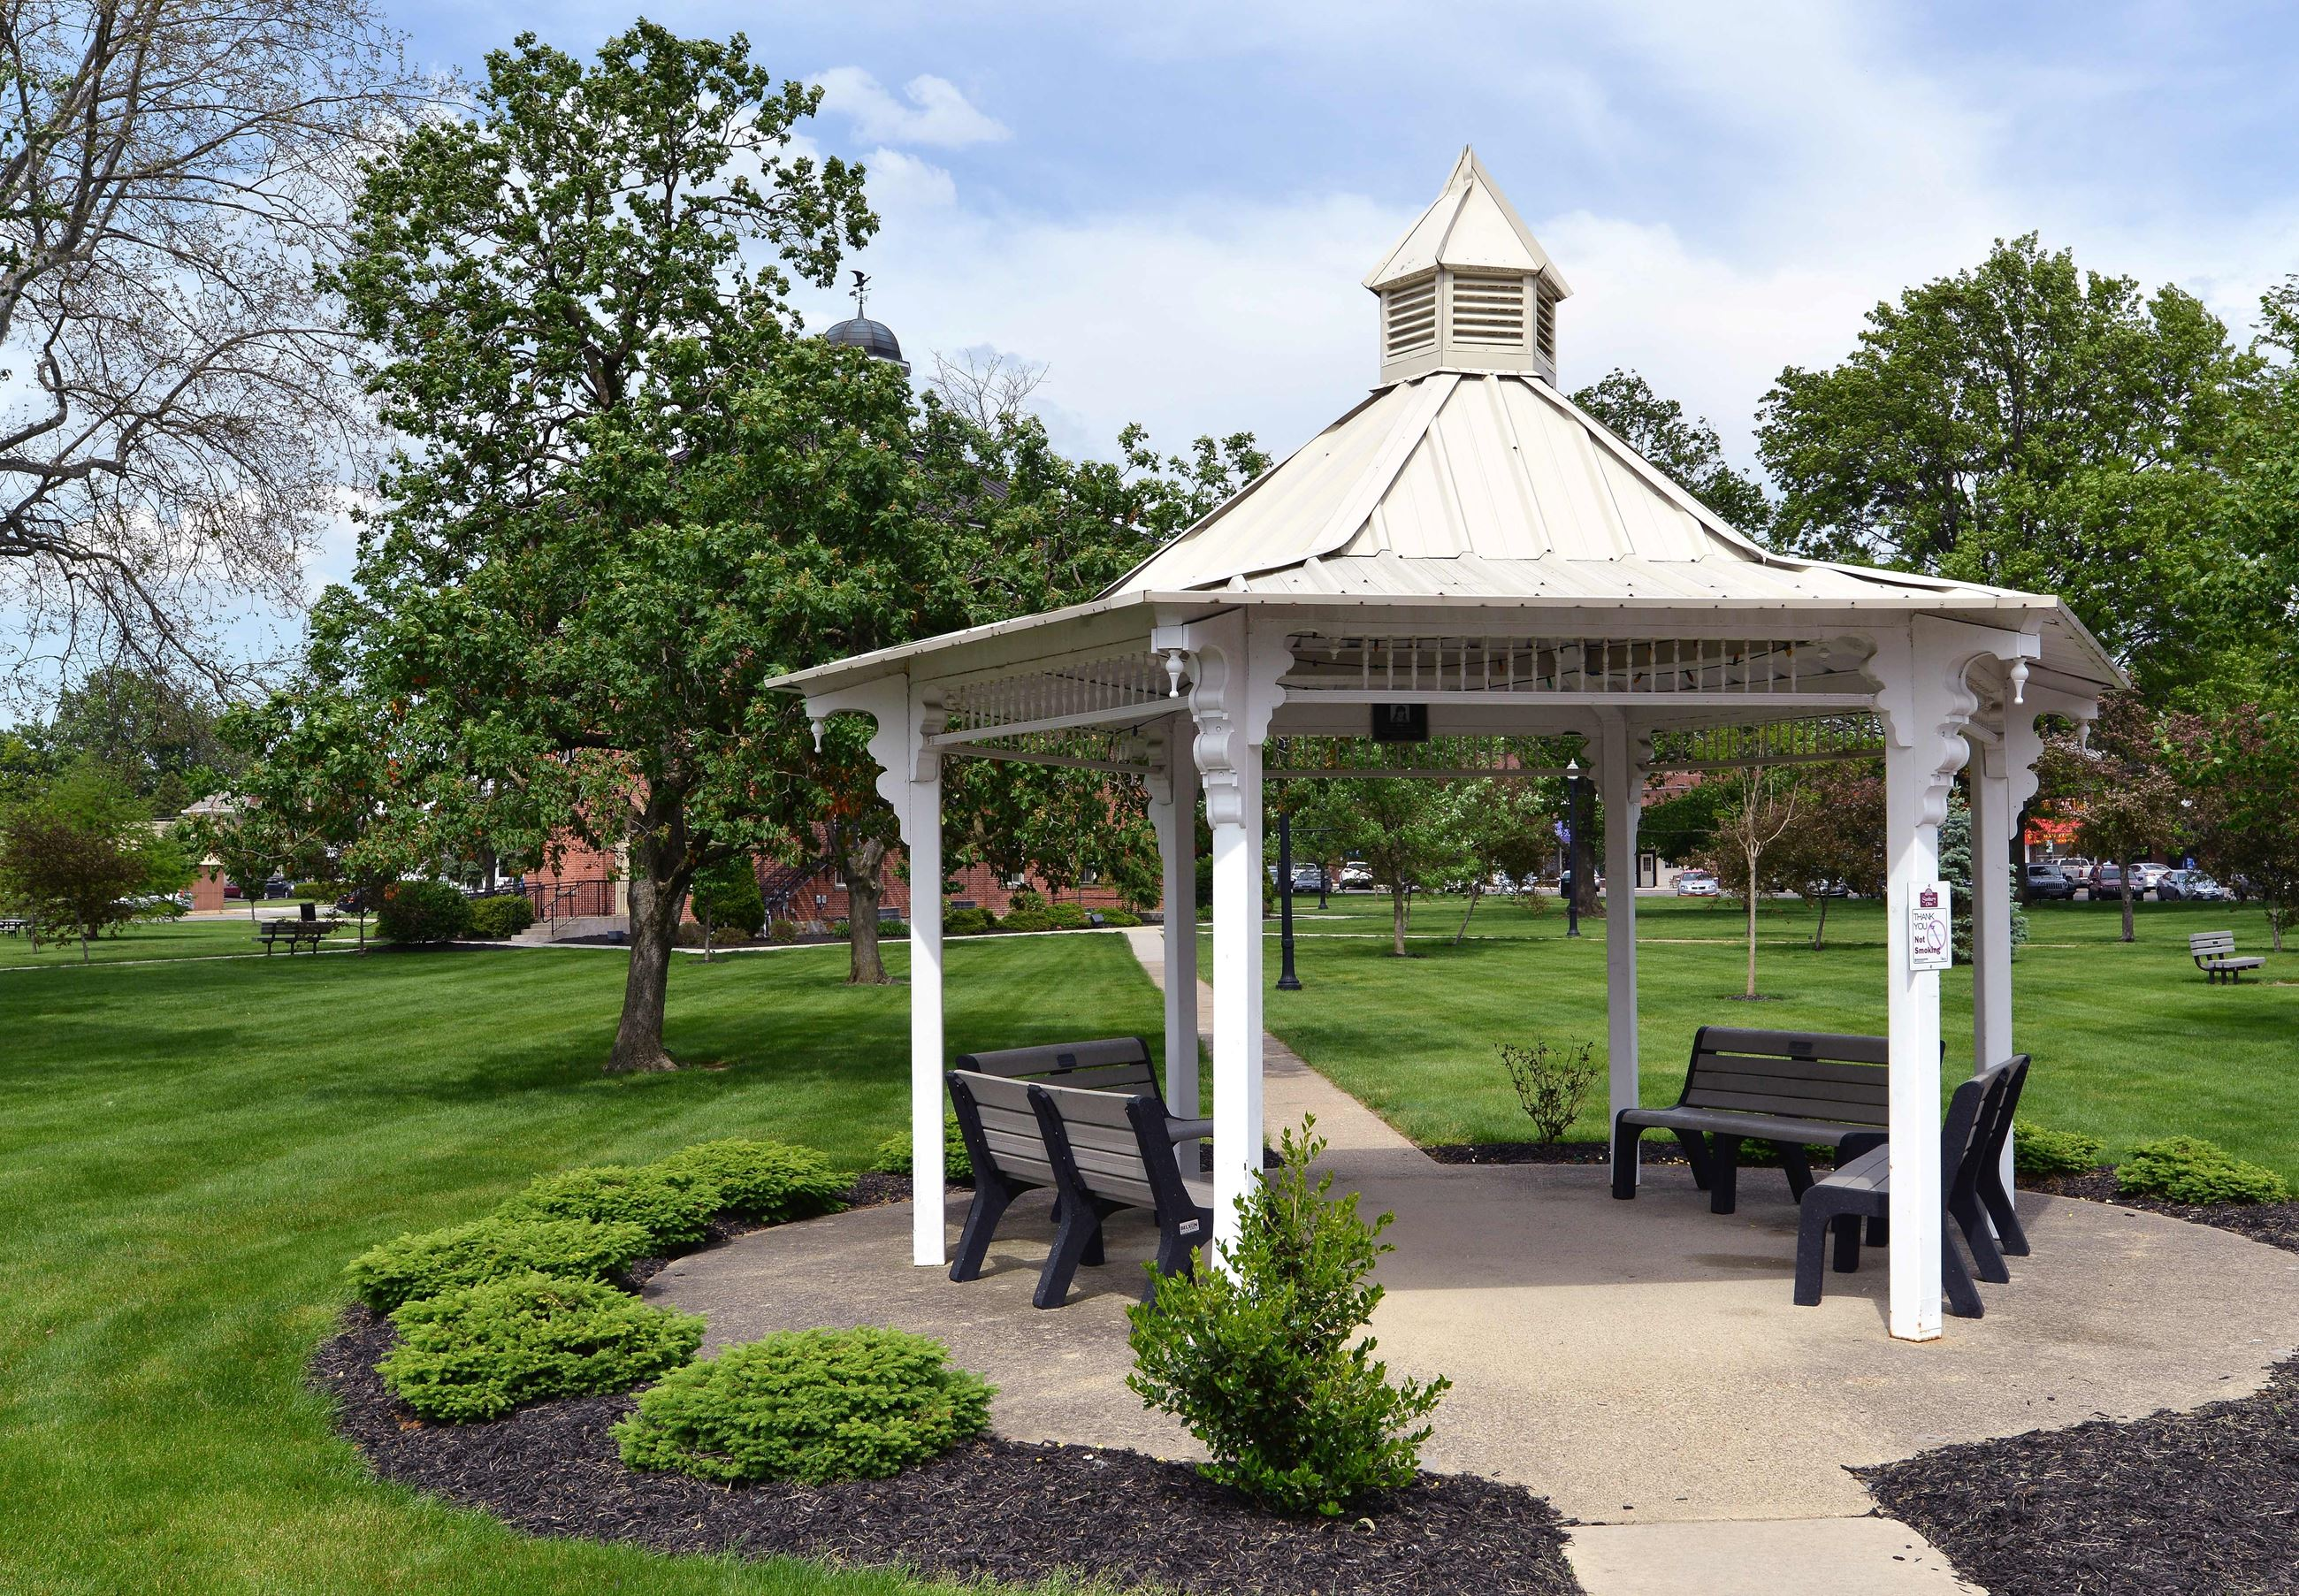 An outside view of town hall grounds and white gazebo